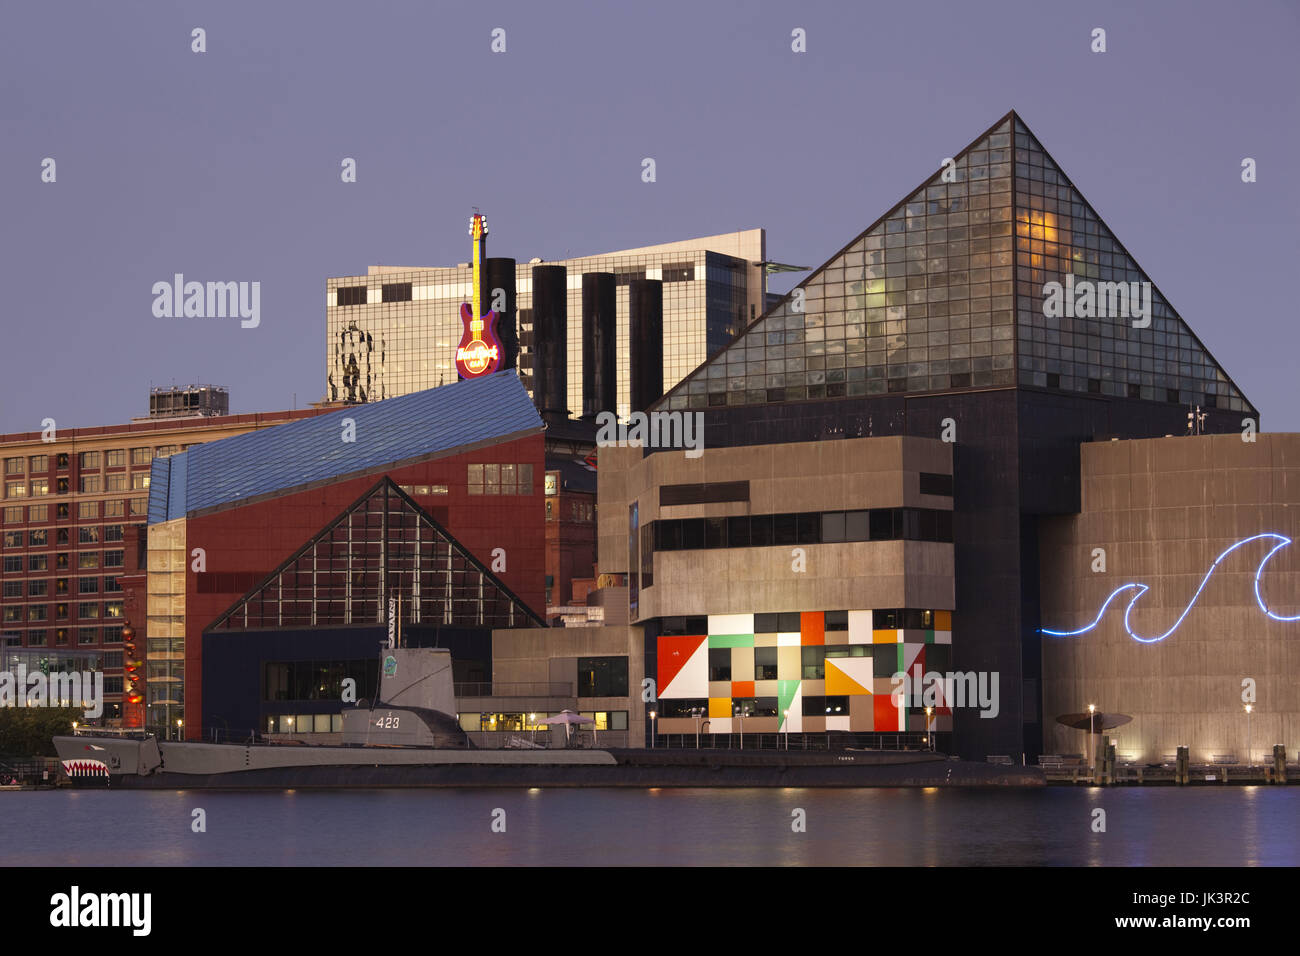 USA, Maryland, Baltimore, Inner Harbor, National Aquarium, dusk - Stock Image